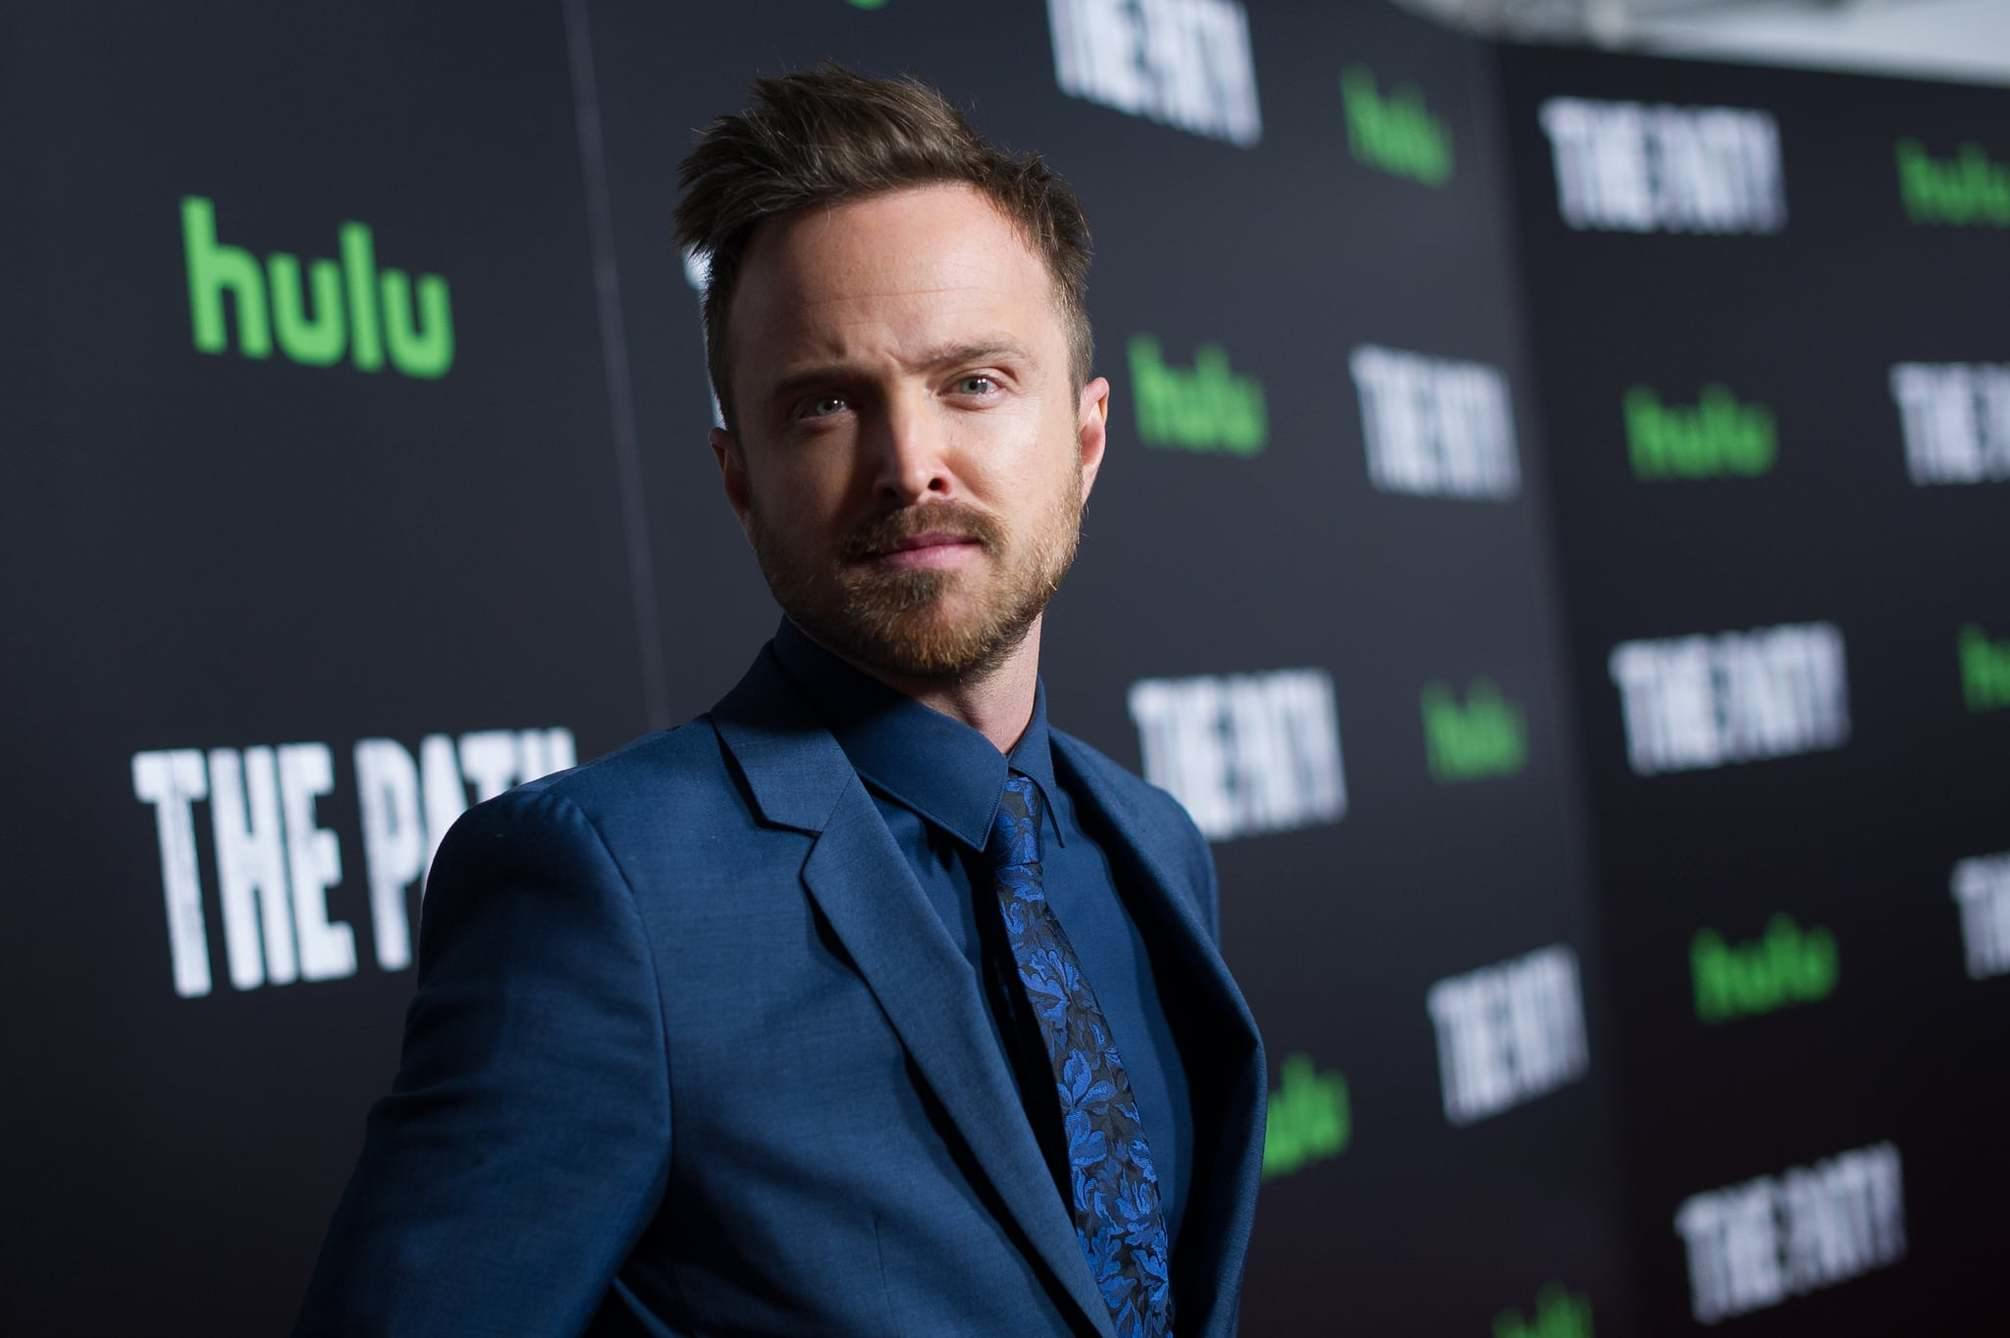 Aaron Paul at the premier of The Path